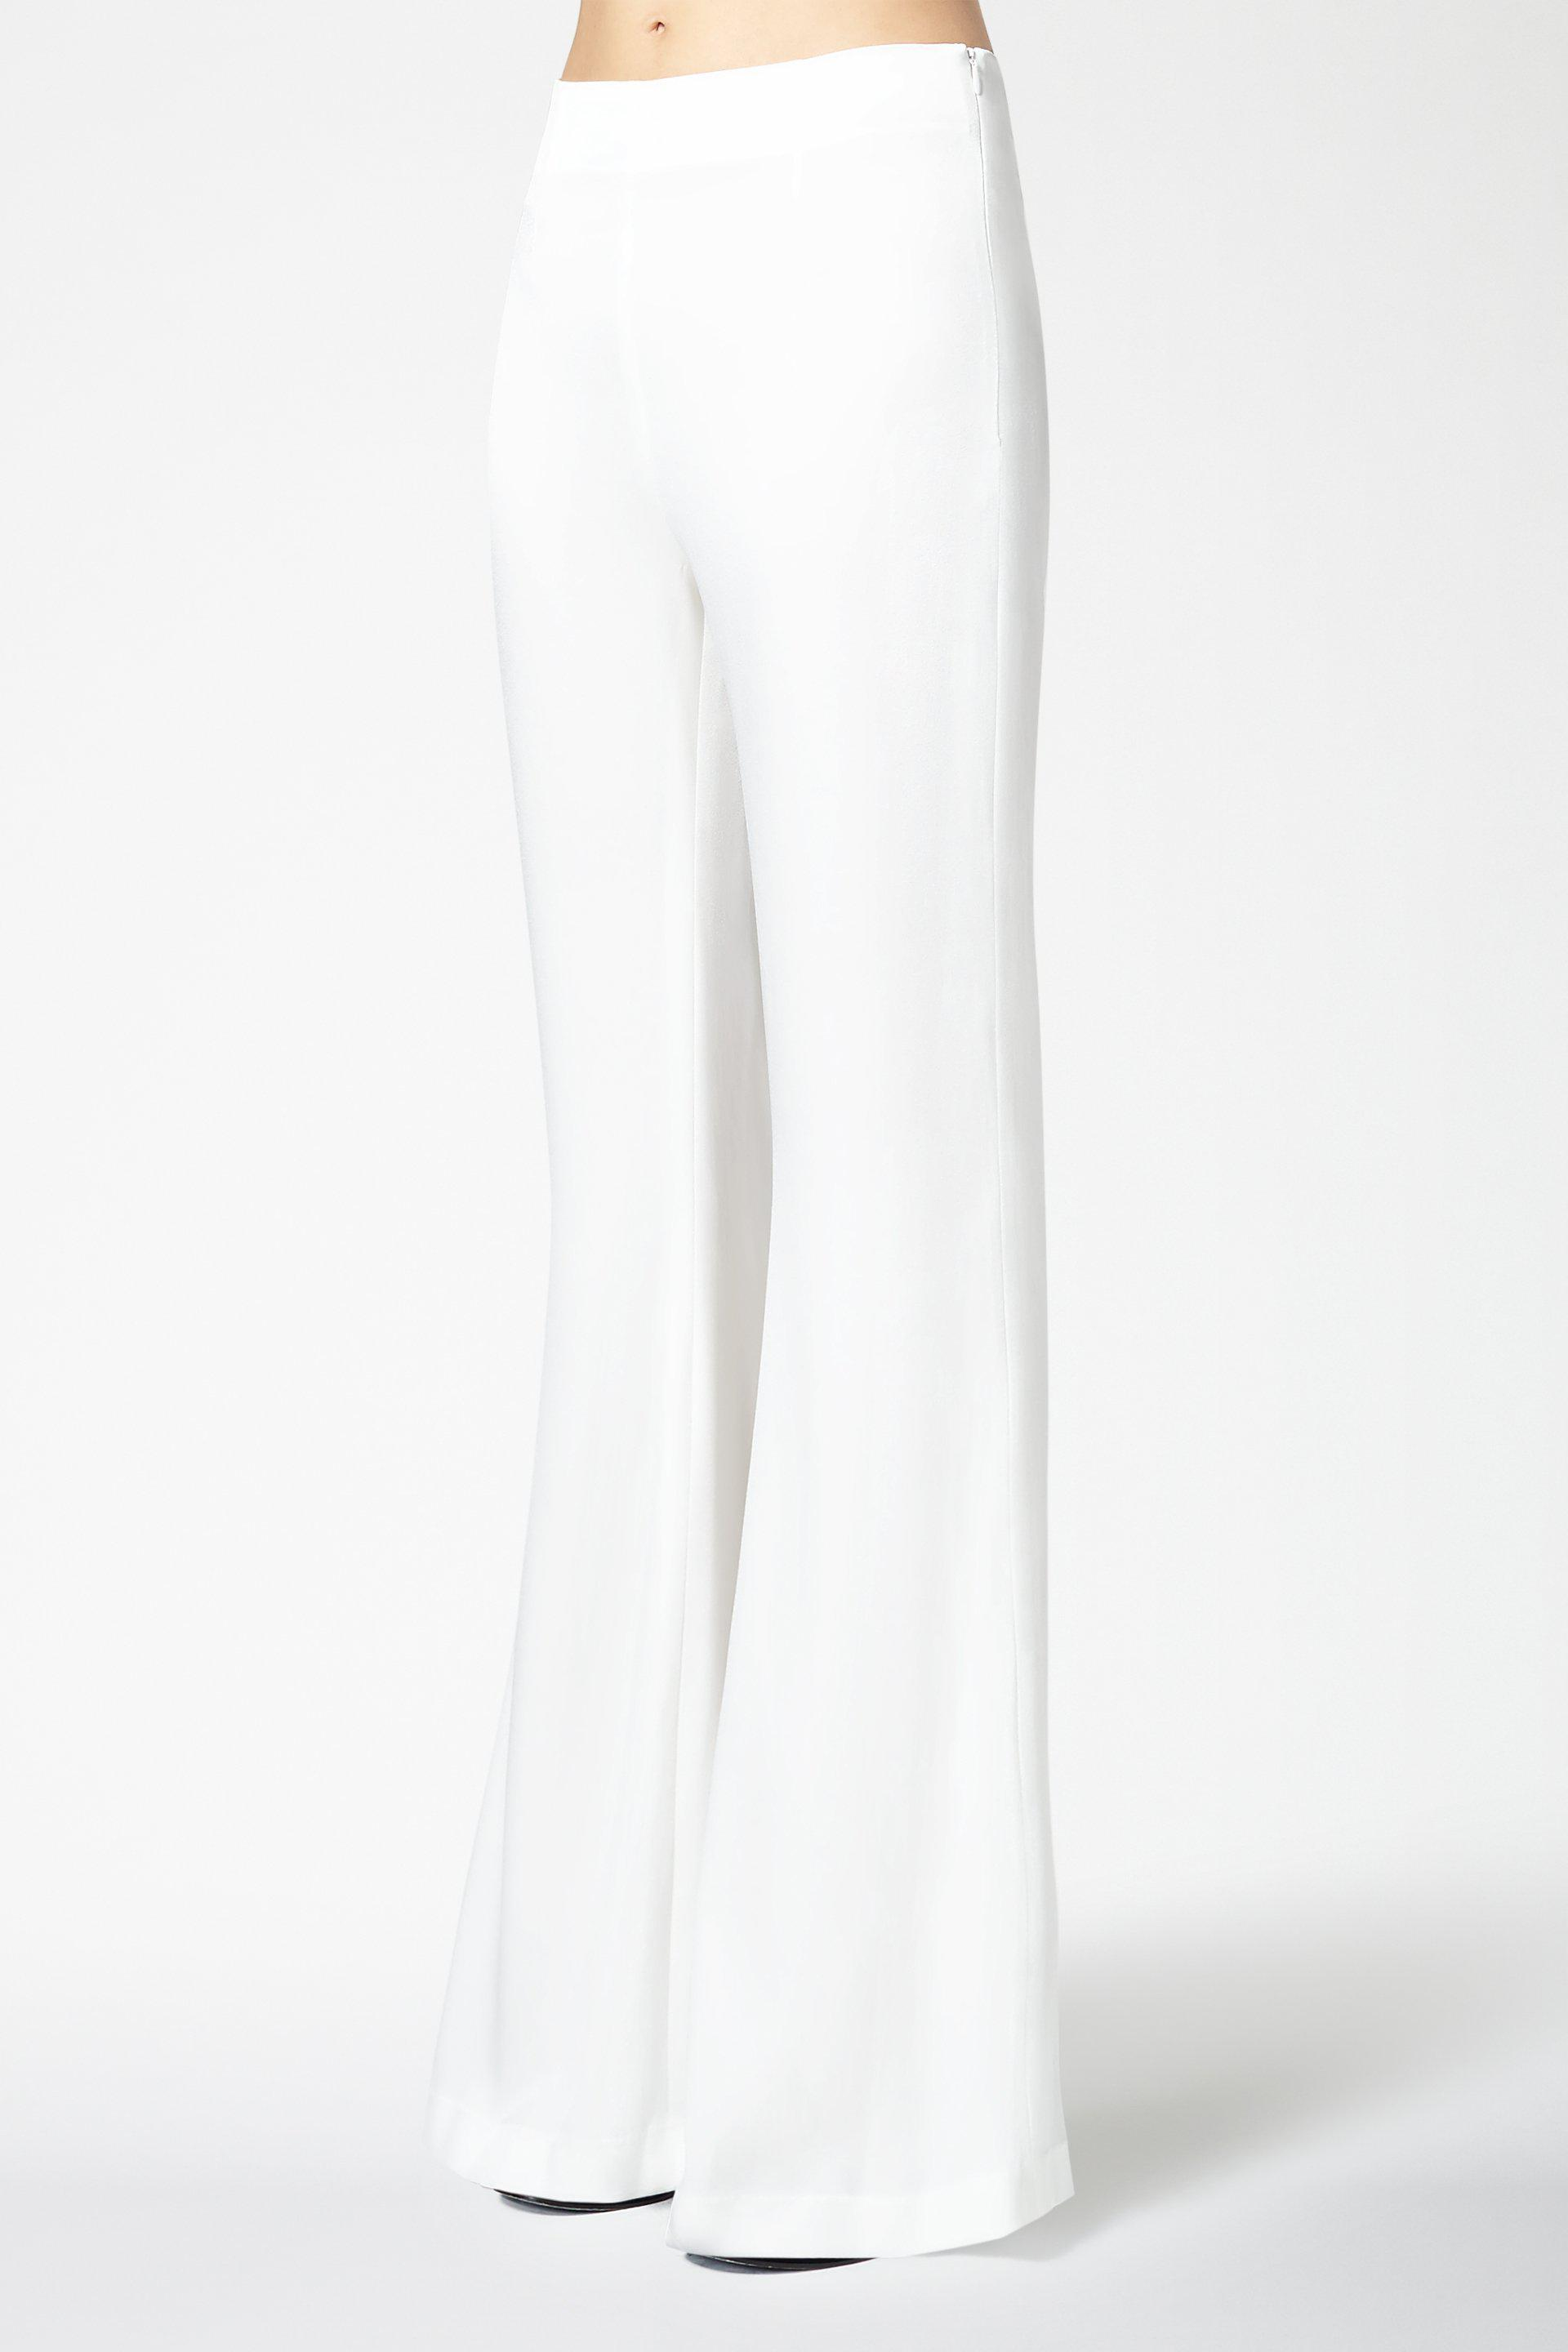 High Waisted Satin Trousers - White 1